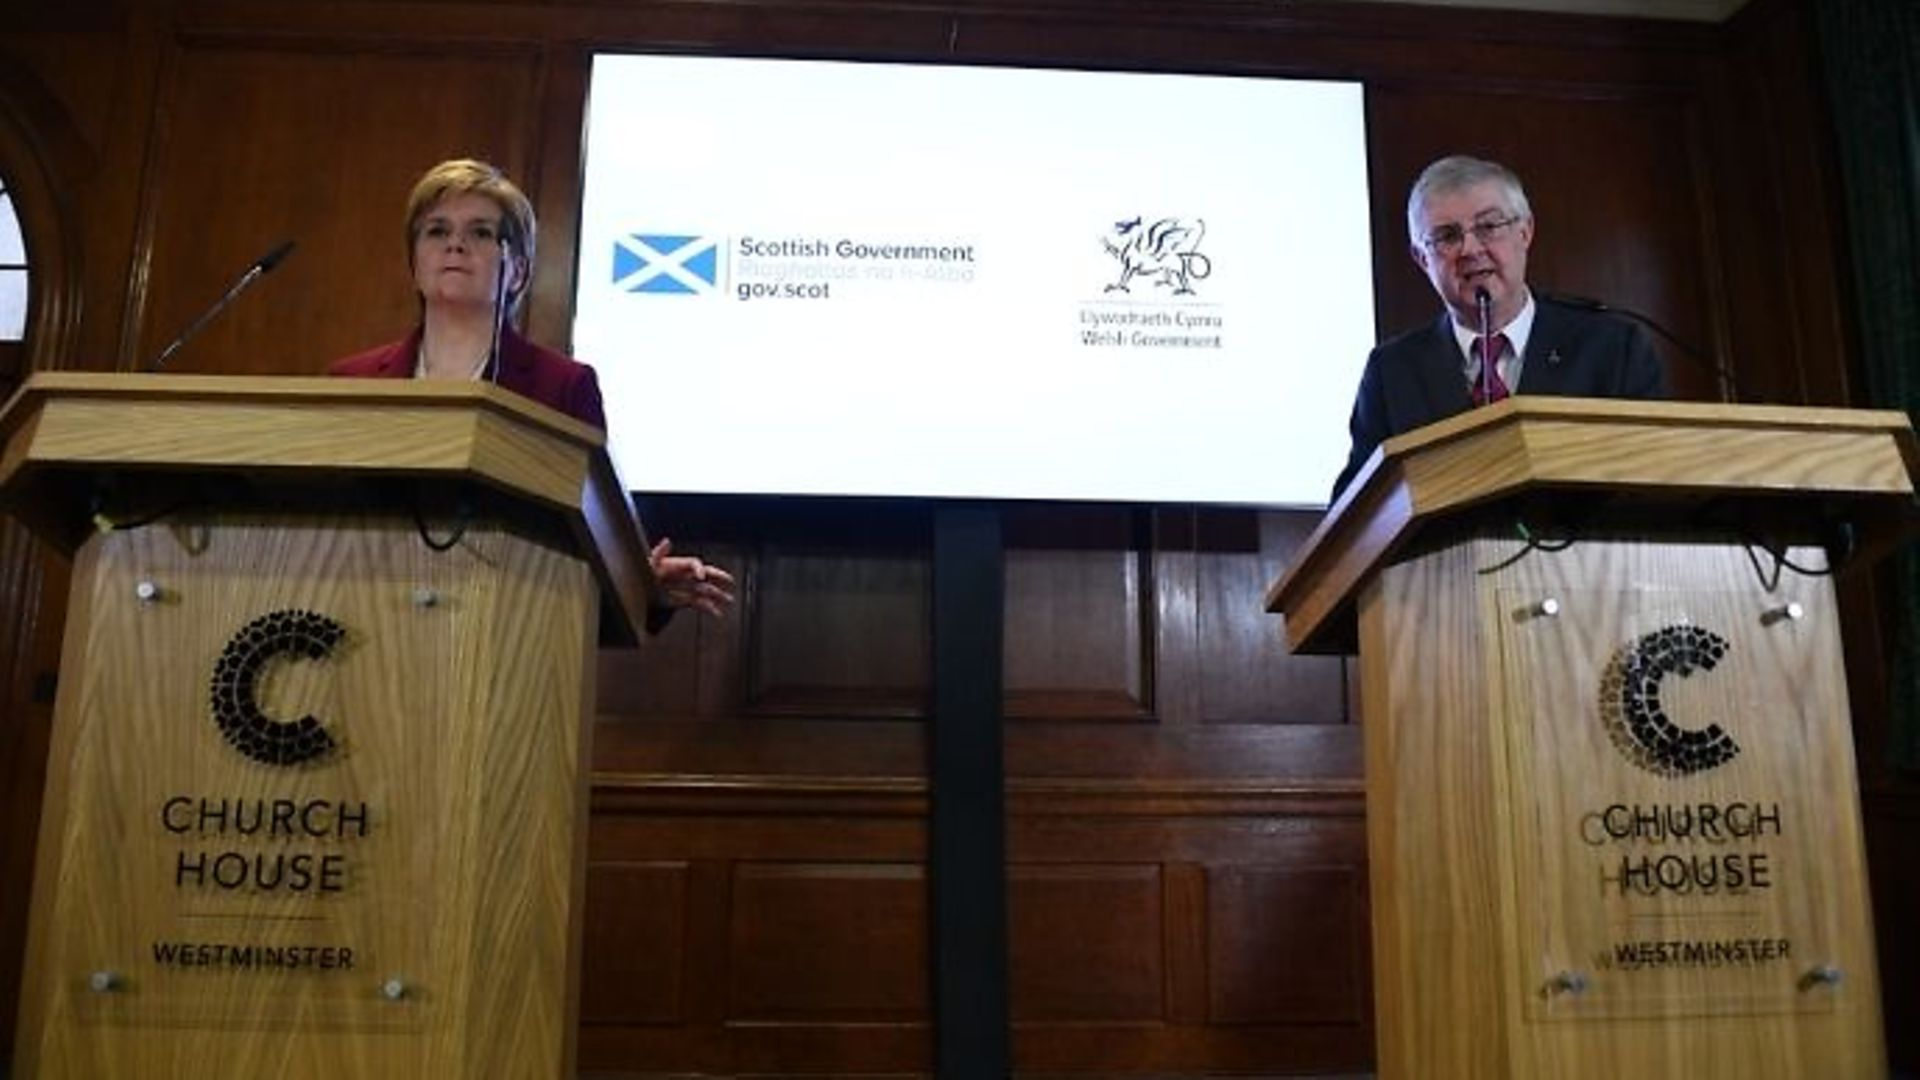 Scottish first minister Nicola Sturgeon and Welsh first minister Mark Drakeford during a joint press conference at Bishop Partridge Hall, Westminster. - Credit: Daniel Leal-Olivas/PA Archive/PA Images